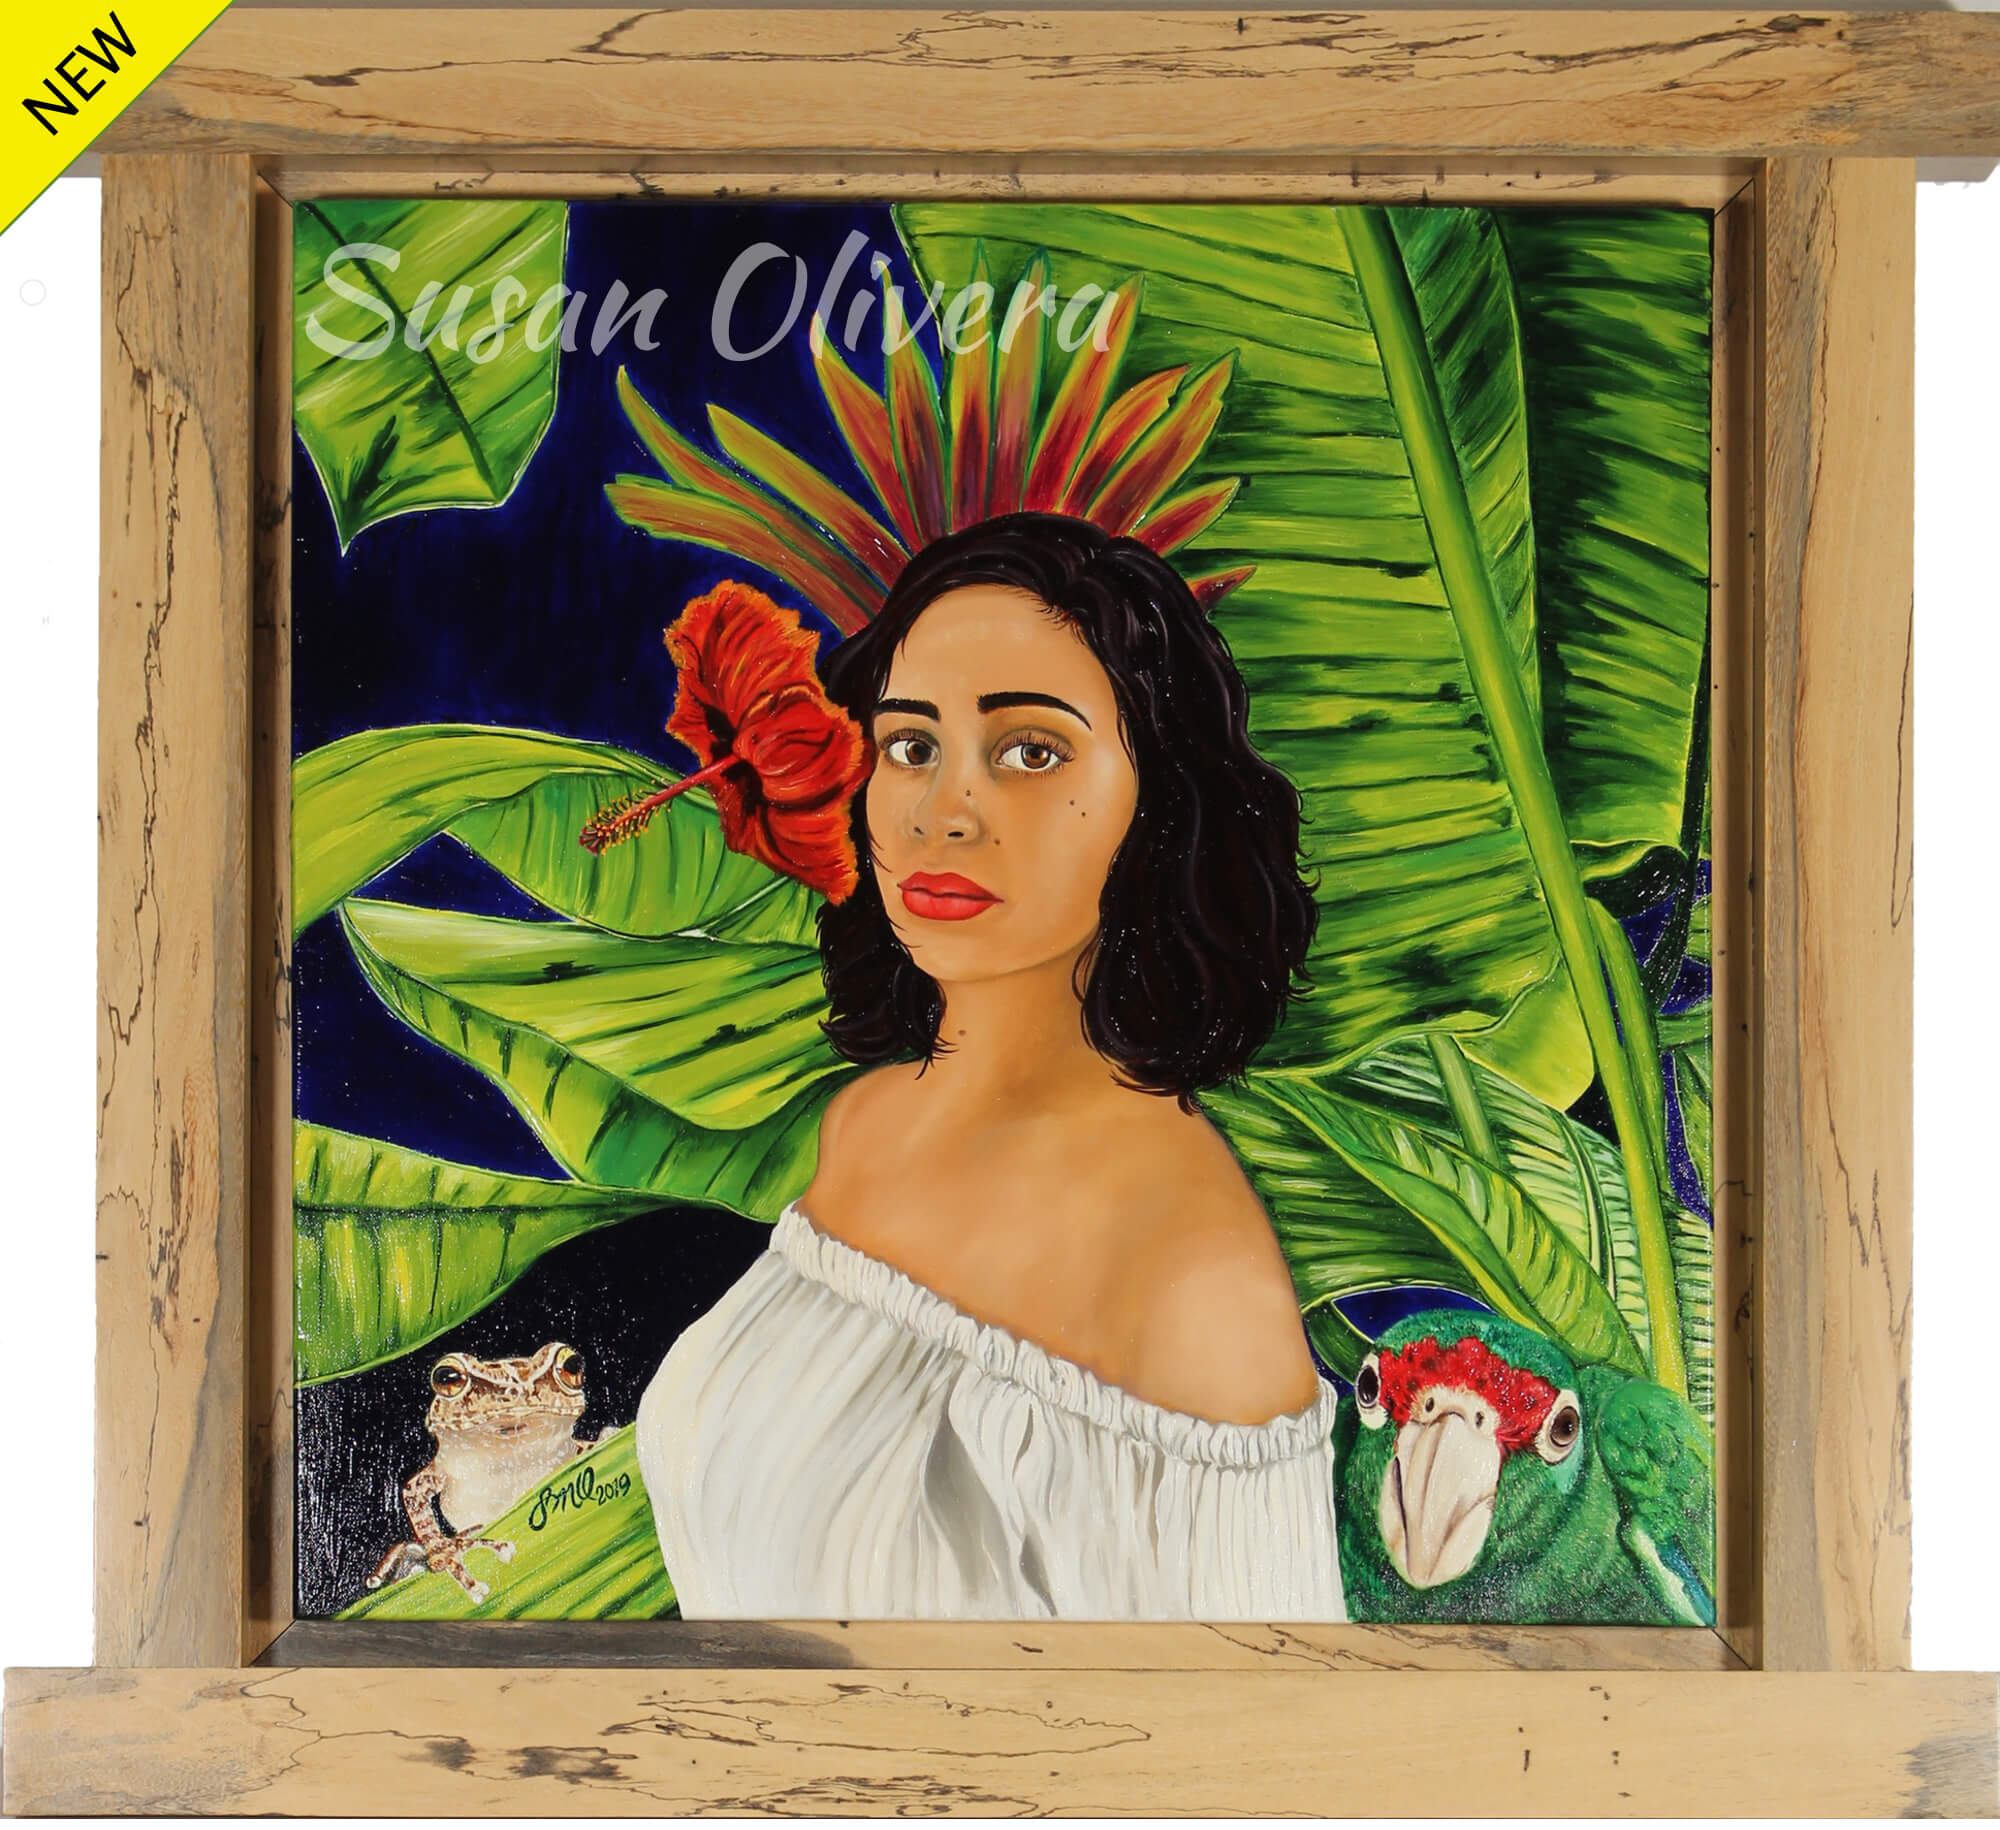 Oil painting of portrait of female in a tropical forest-like scenario with typical vegetation, amphibian (coquí) and bird (parrot) representing a Puertorrican born daughter by Susan Olivera.